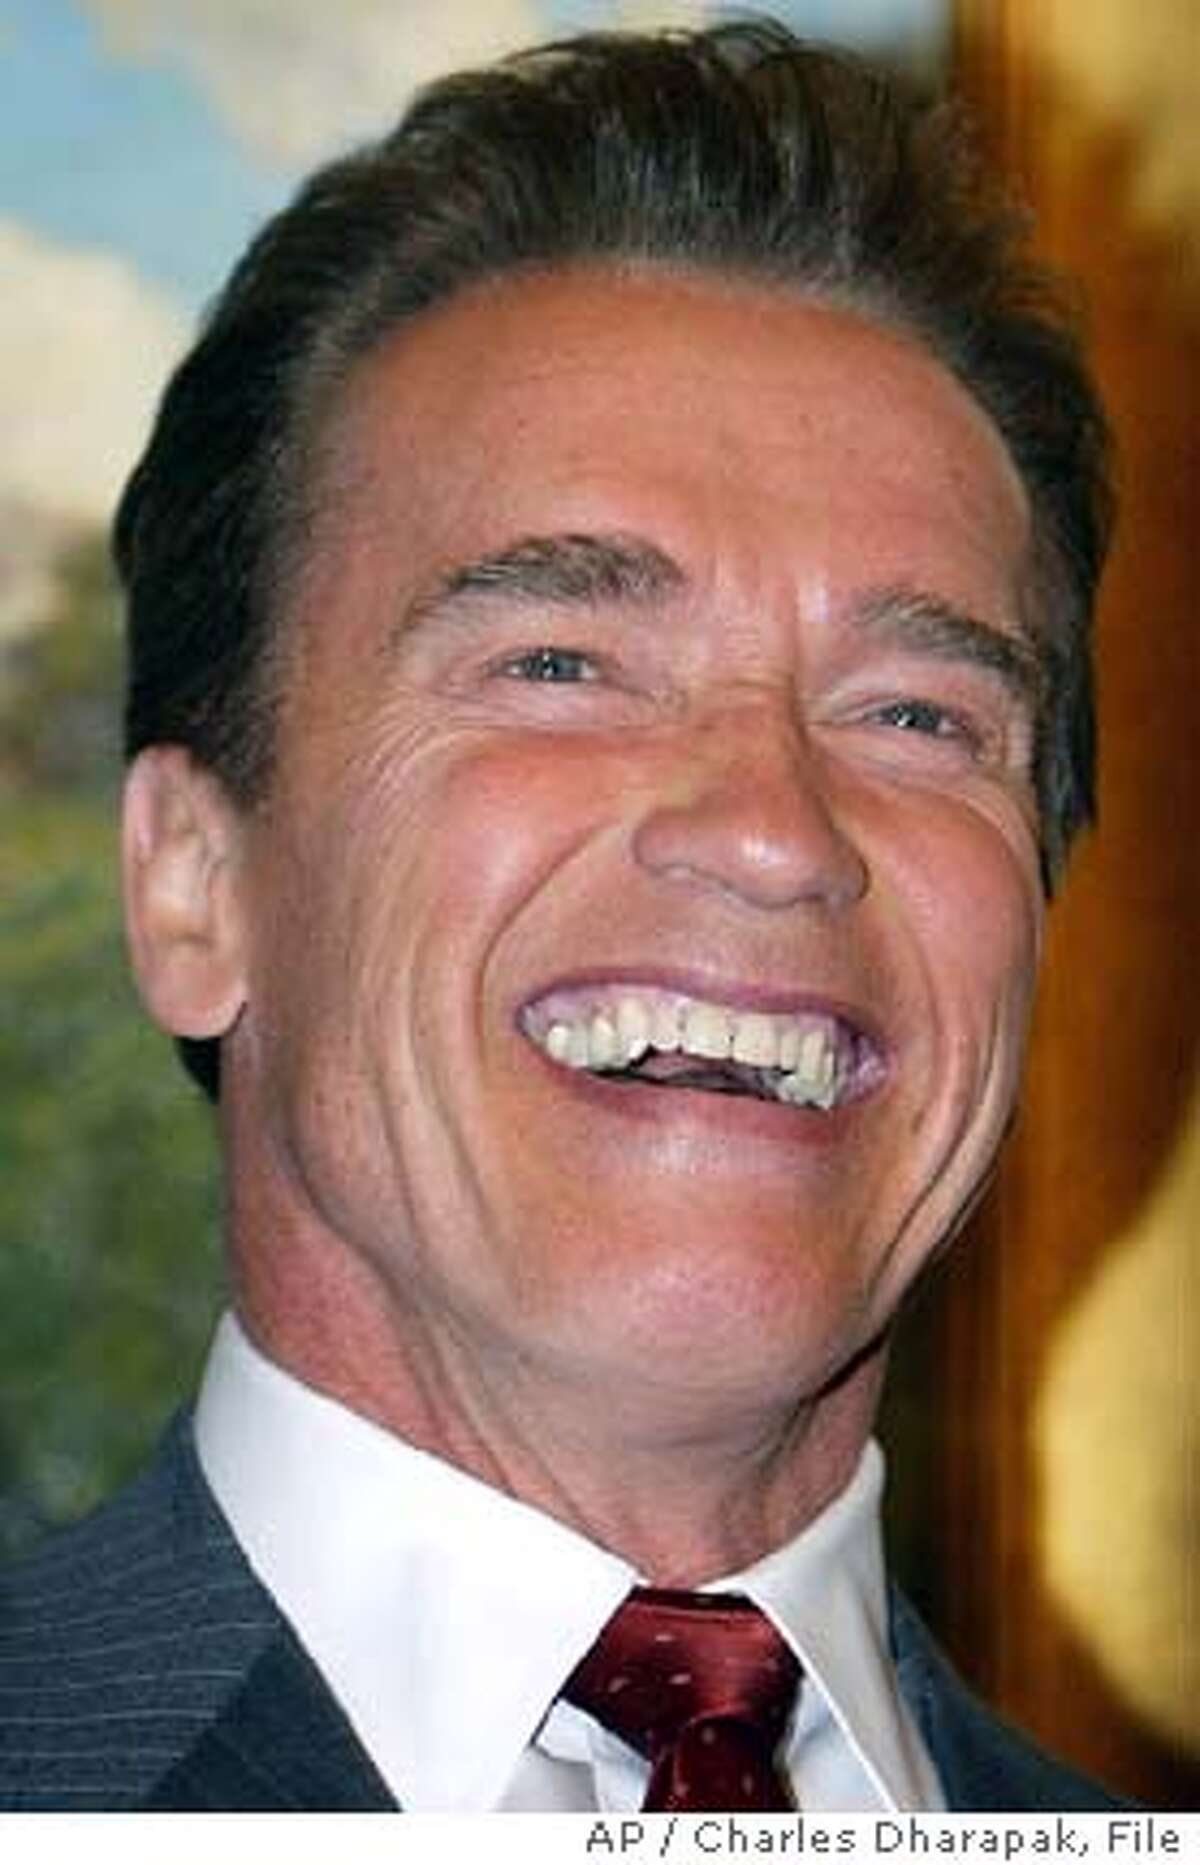 """** FILE **California Gov. Arnold Schwarzenegger reacts to a question while meeting with reporters Feb. 24, 2004, in Washington. . Schwarzenegger will return to the big screen next year to make a cameo in a comedy written and produced by friend Tom Arnold. Schwarzenegger said he's in """"The Kid and I"""" during an appearance Monday, Dec. 13, 2004, on Fox's """"The Best Damn Sports Show Period,"""" which is co-hosted by Arnold. (AP Photo/Charles Dharapak, File)"""